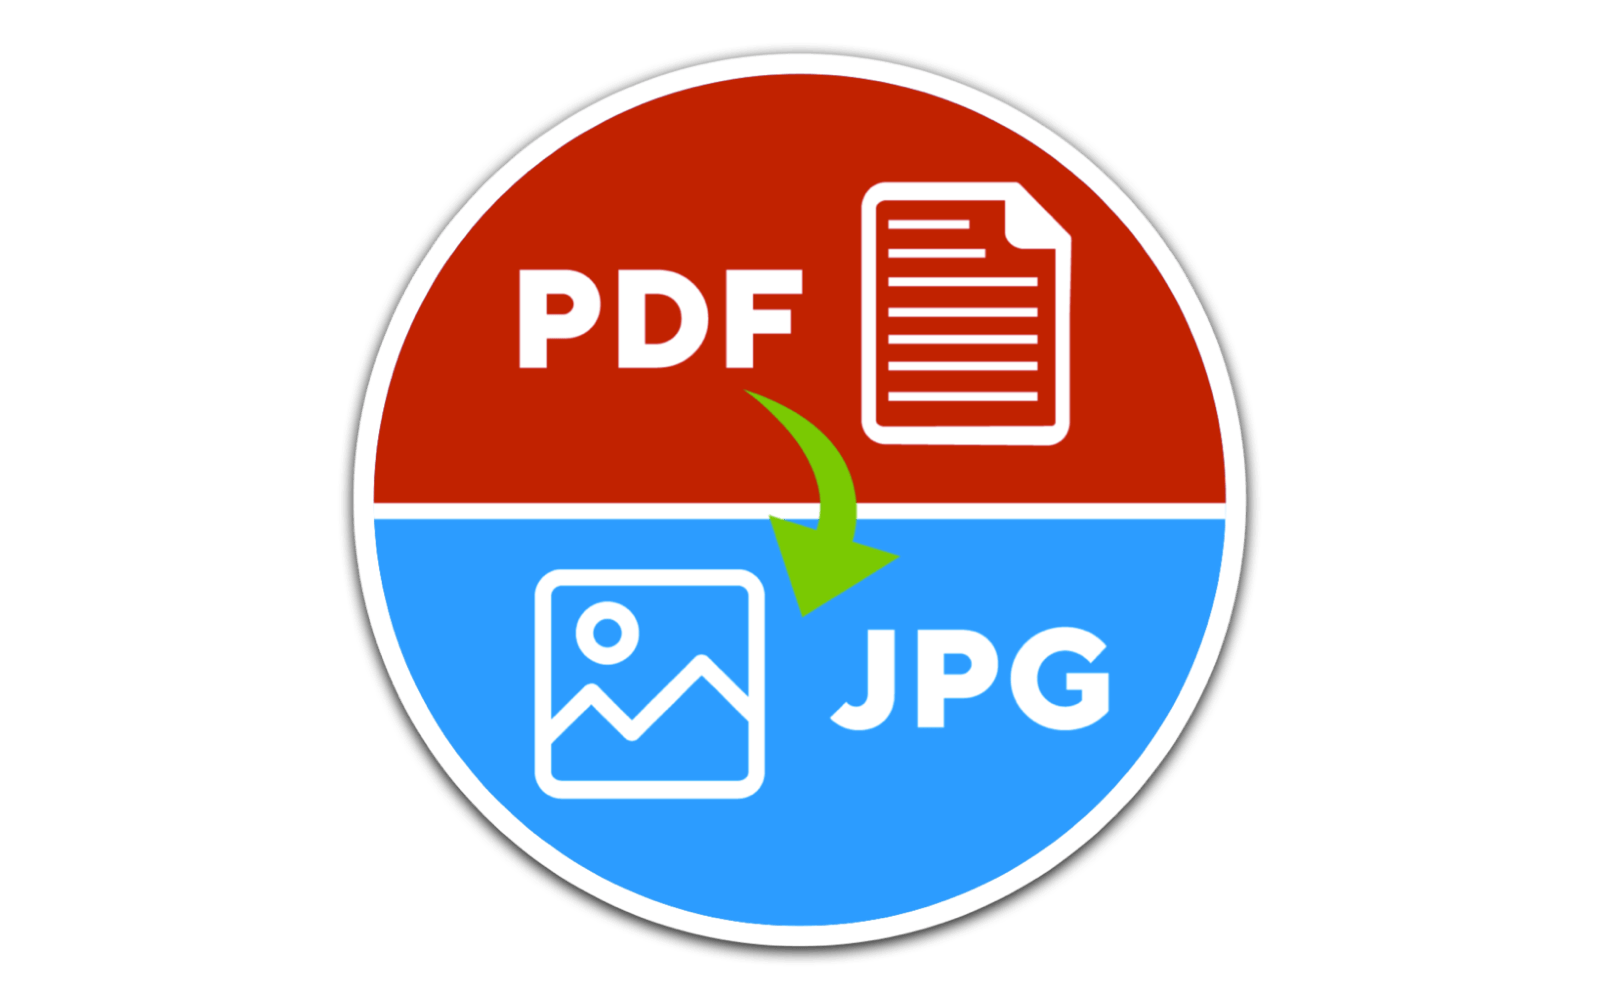 How to Convert PDF Files to JPG, JPEG or PNG on Mac OS X